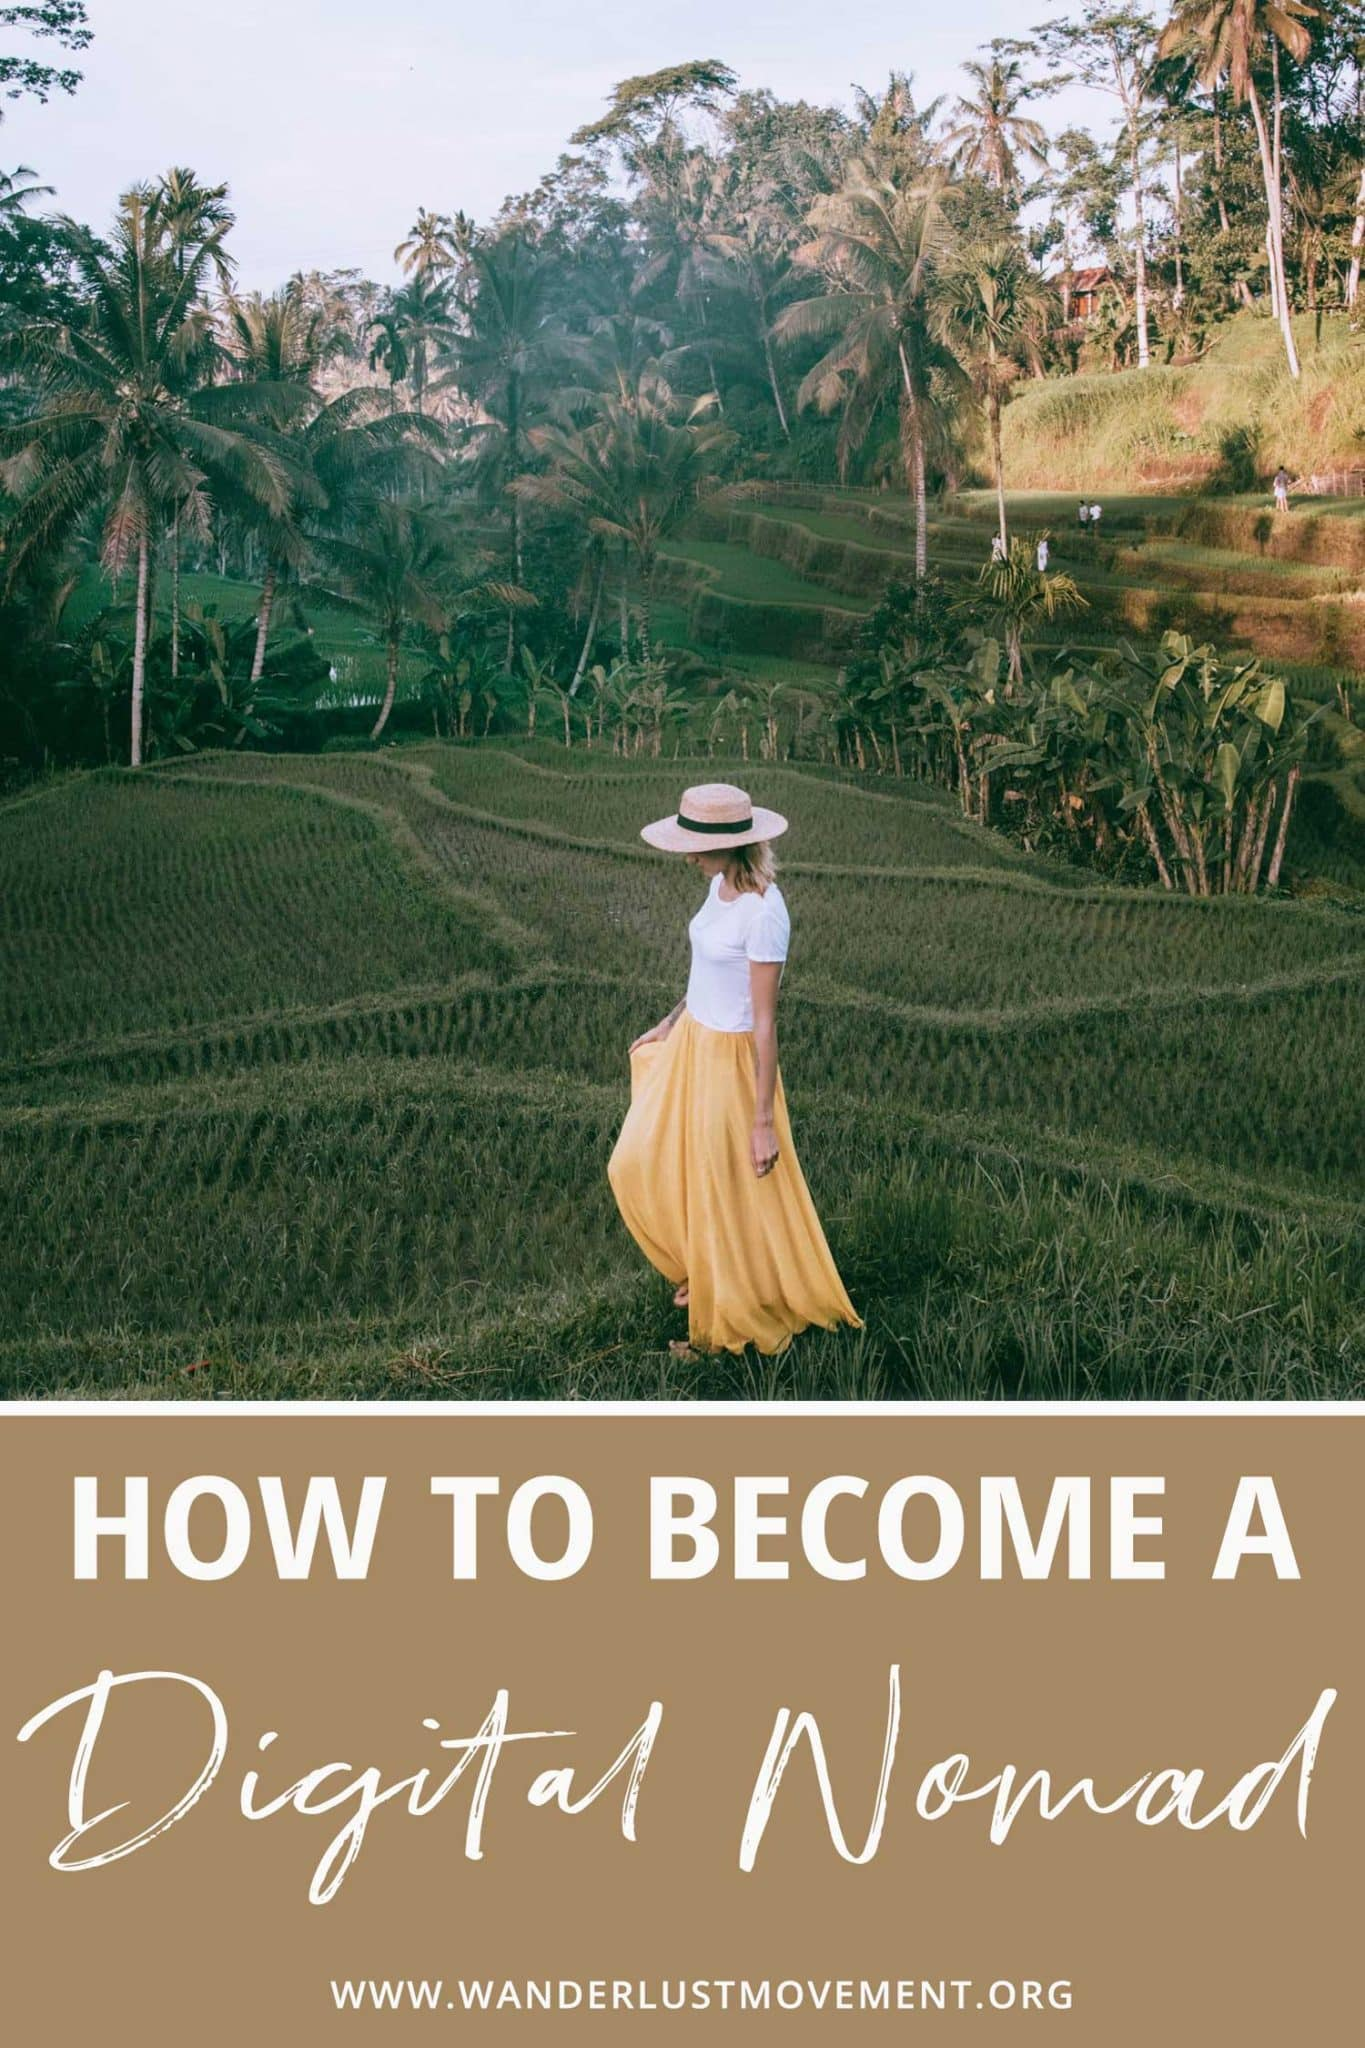 How to Become a Digital Nomad in 6 Easy Steps